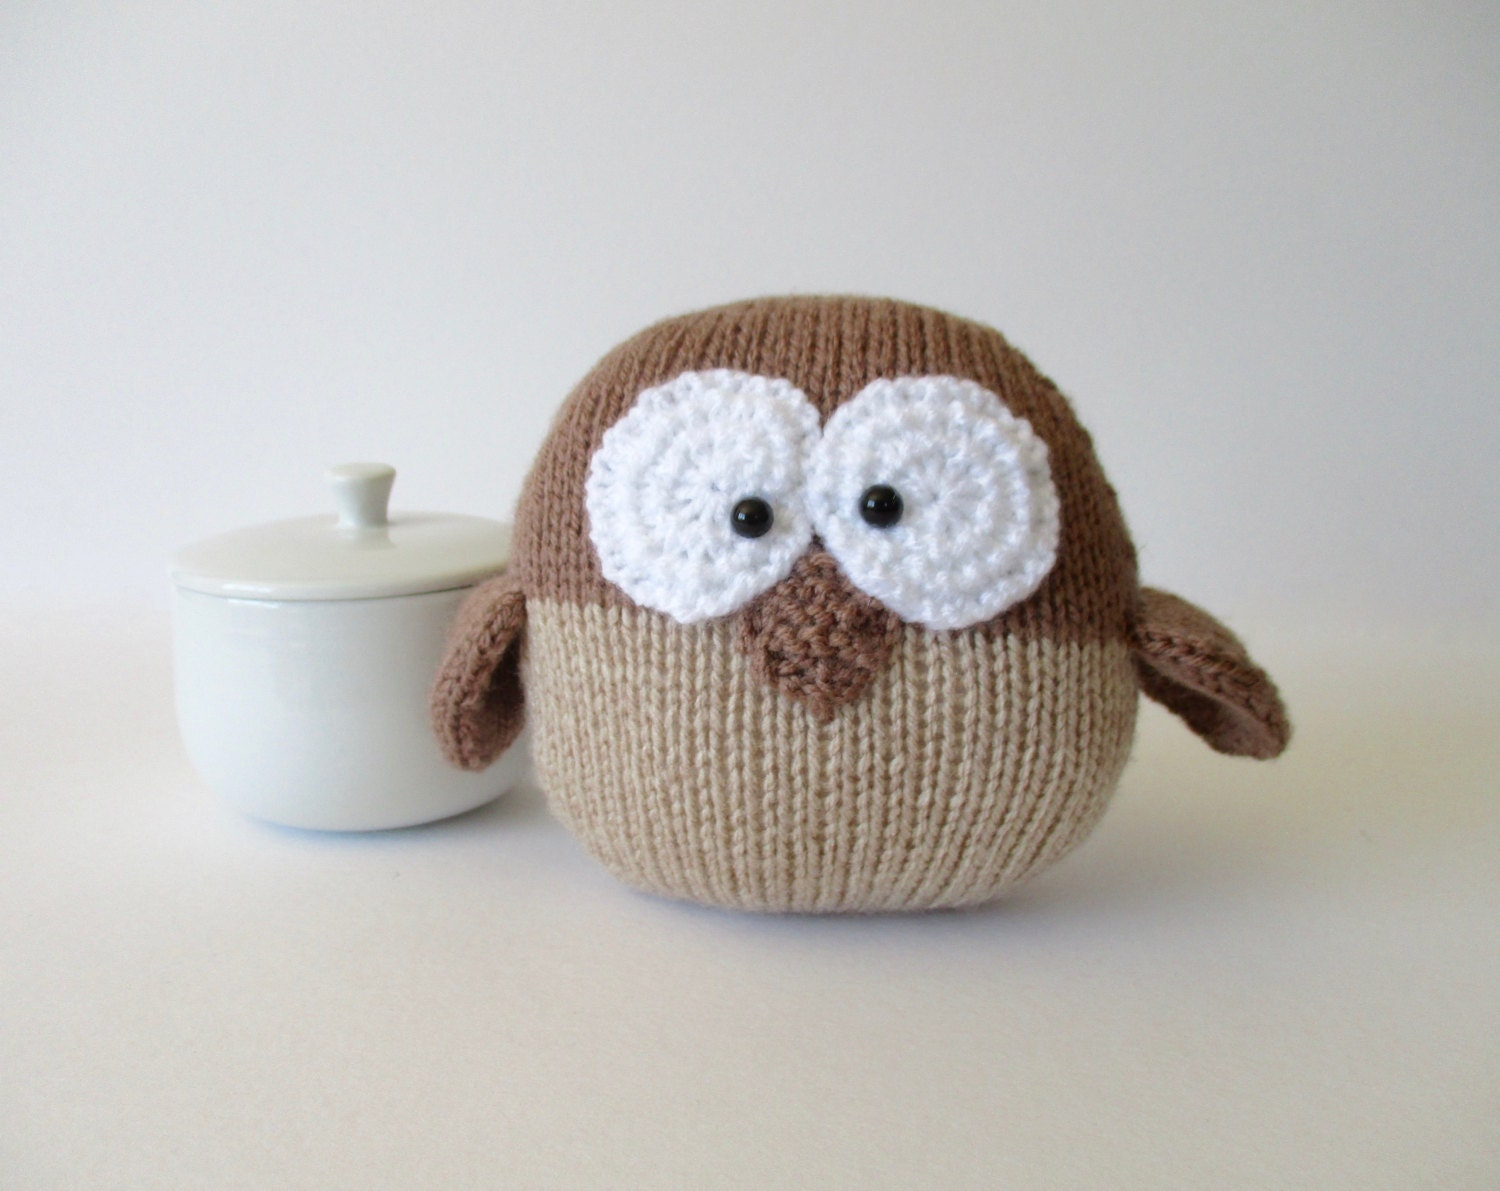 Disney Knitting Patterns Free : Barney Owl toy knitting pattern